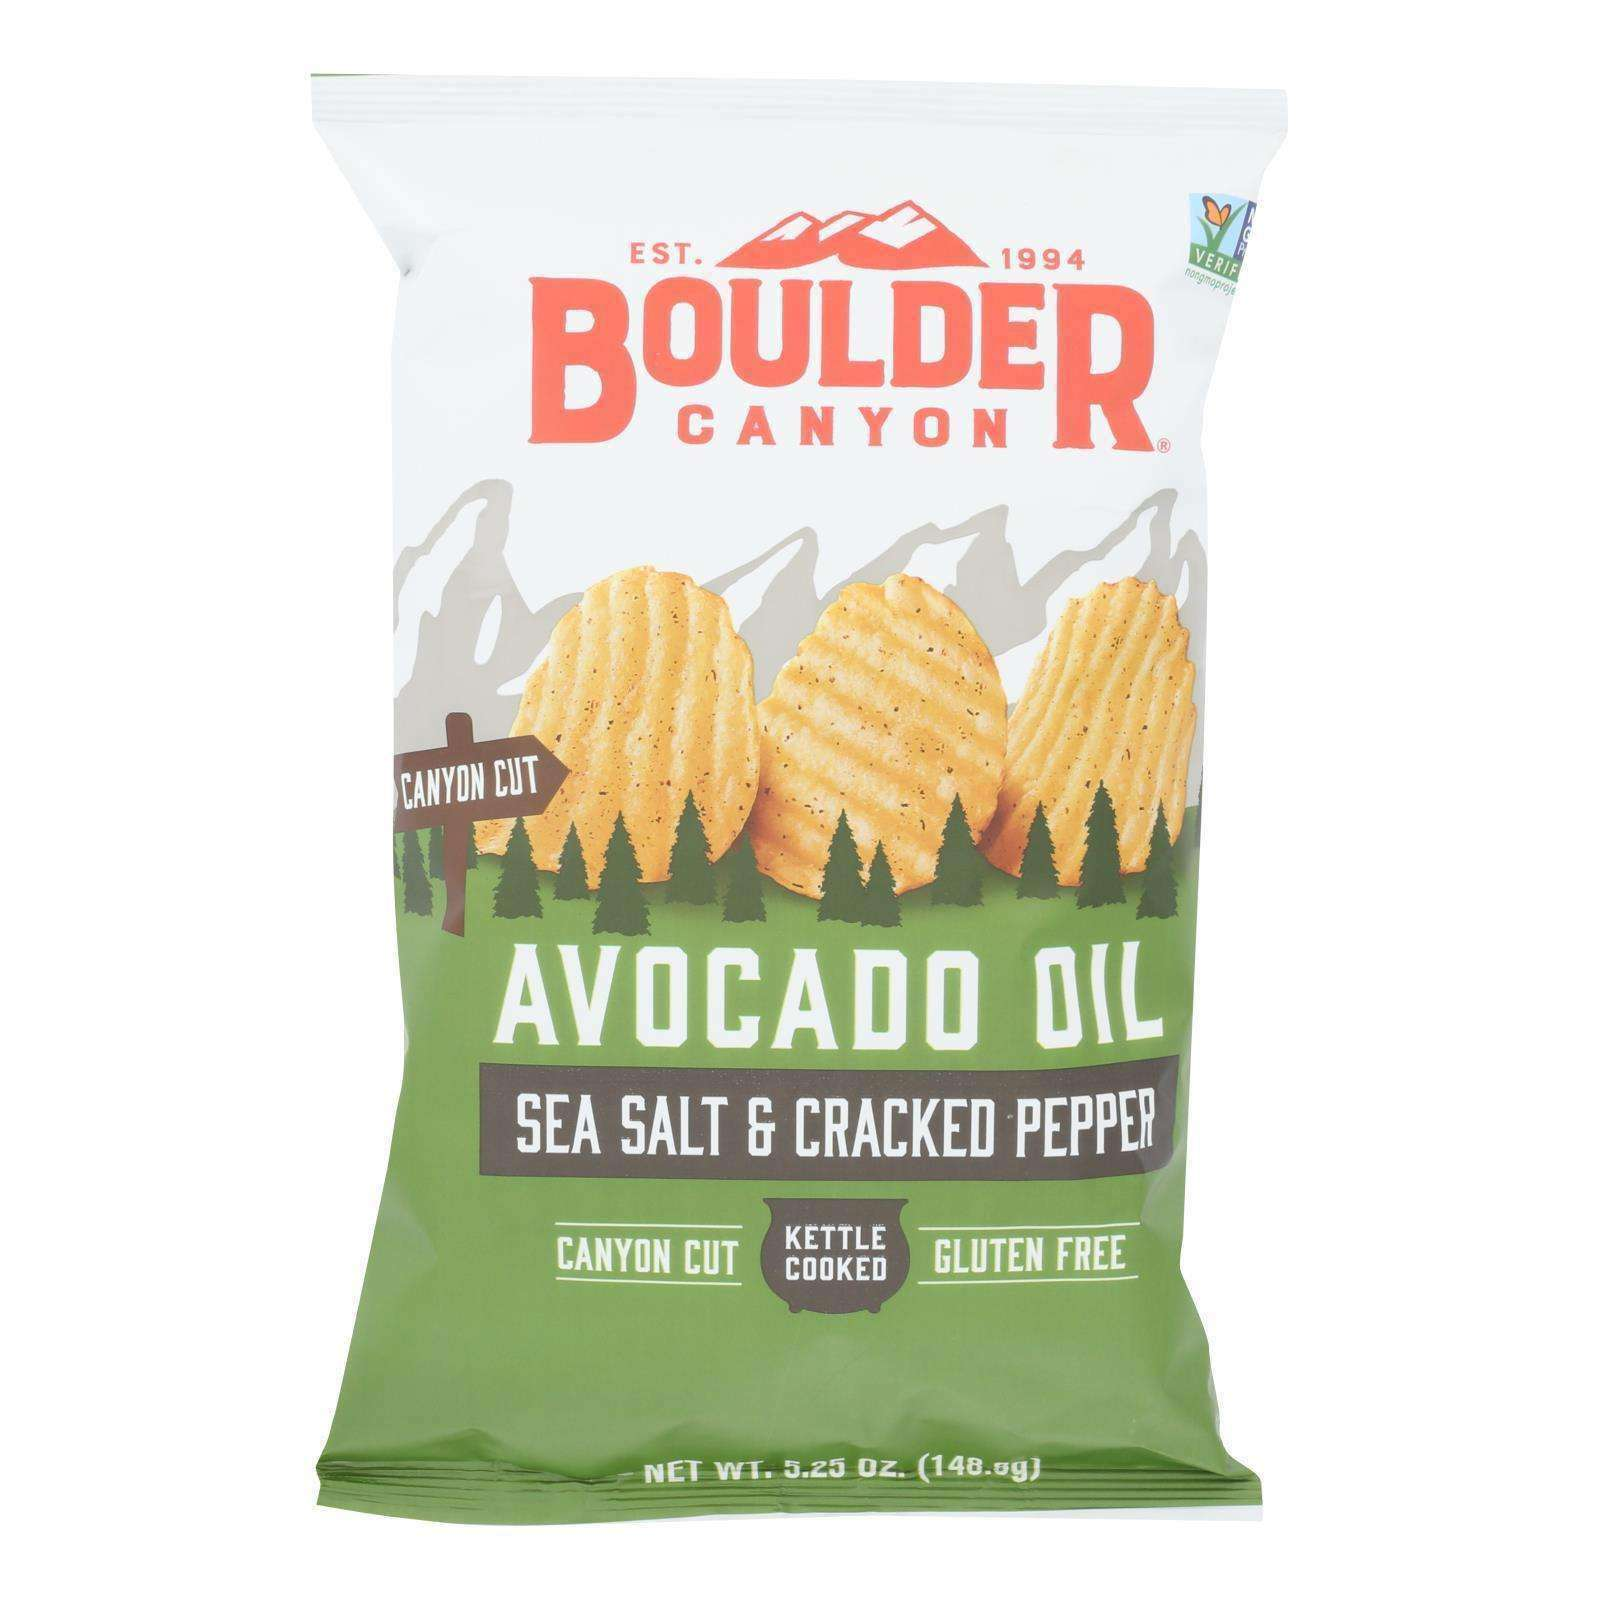 Boulder Canyon - Avocado Oil Canyon Cut Potato Chips - Sea Salt And Cracked Pepper - Case Of 12 - 5.25 Oz. - BeeGreen